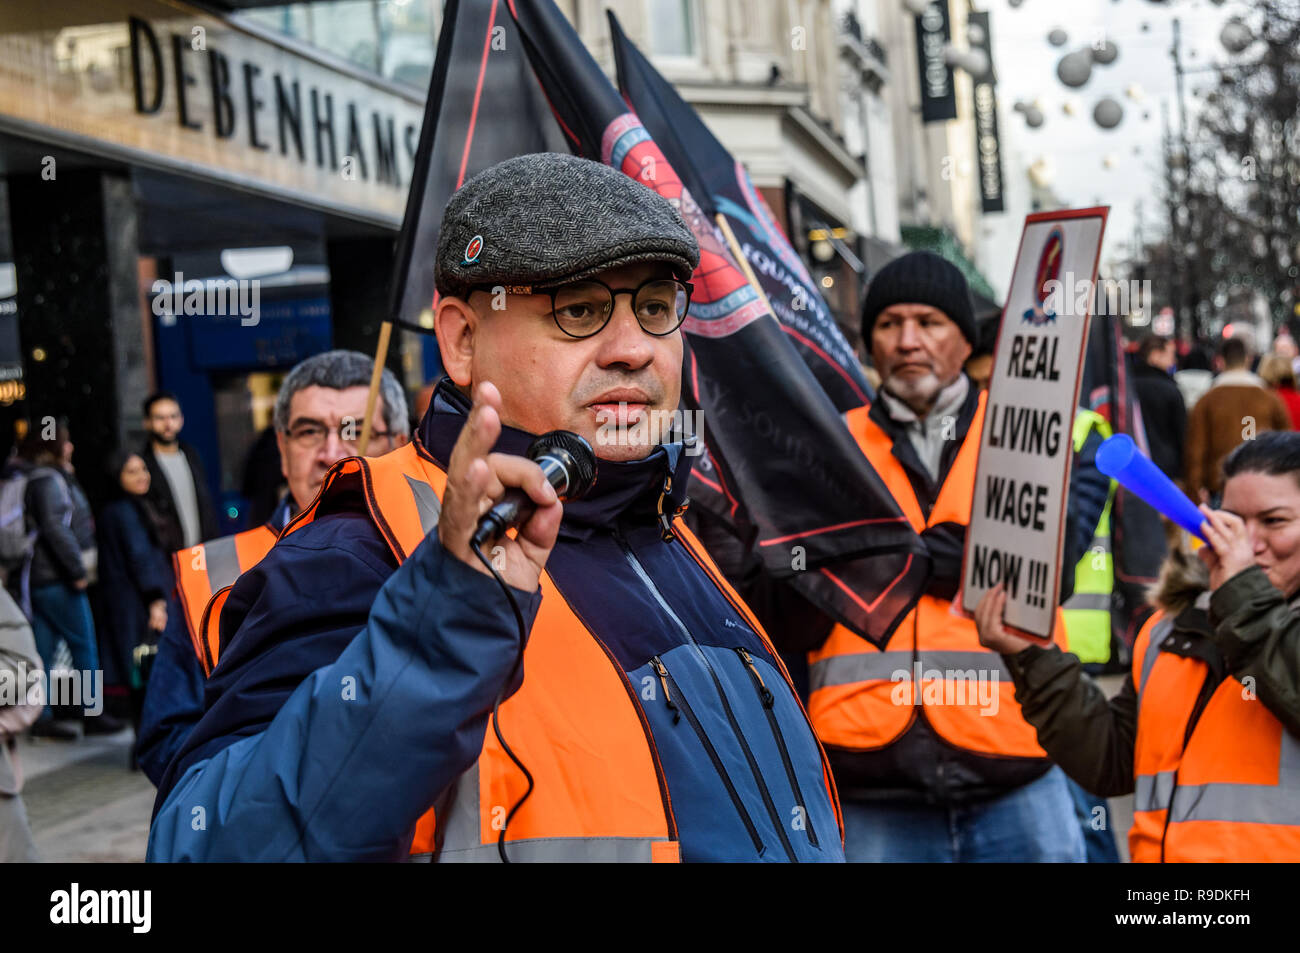 London, UK. 22nd December 2018. Cleaners at the Oxford Street branch of Debenhams hold a rally outside the store where they are on strike today. The Independent Workers Union. 22nd Dec, 2018. CAIWU had been campaigning for the London Living Wage since May, but employers Interserve have refused any talks with the union which they refuse to recognise. Peter Marshall/IMAGES LIVE Credit: Peter Marshall/IMAGESLIVE/ZUMA Wire/Alamy Live News - Stock Image